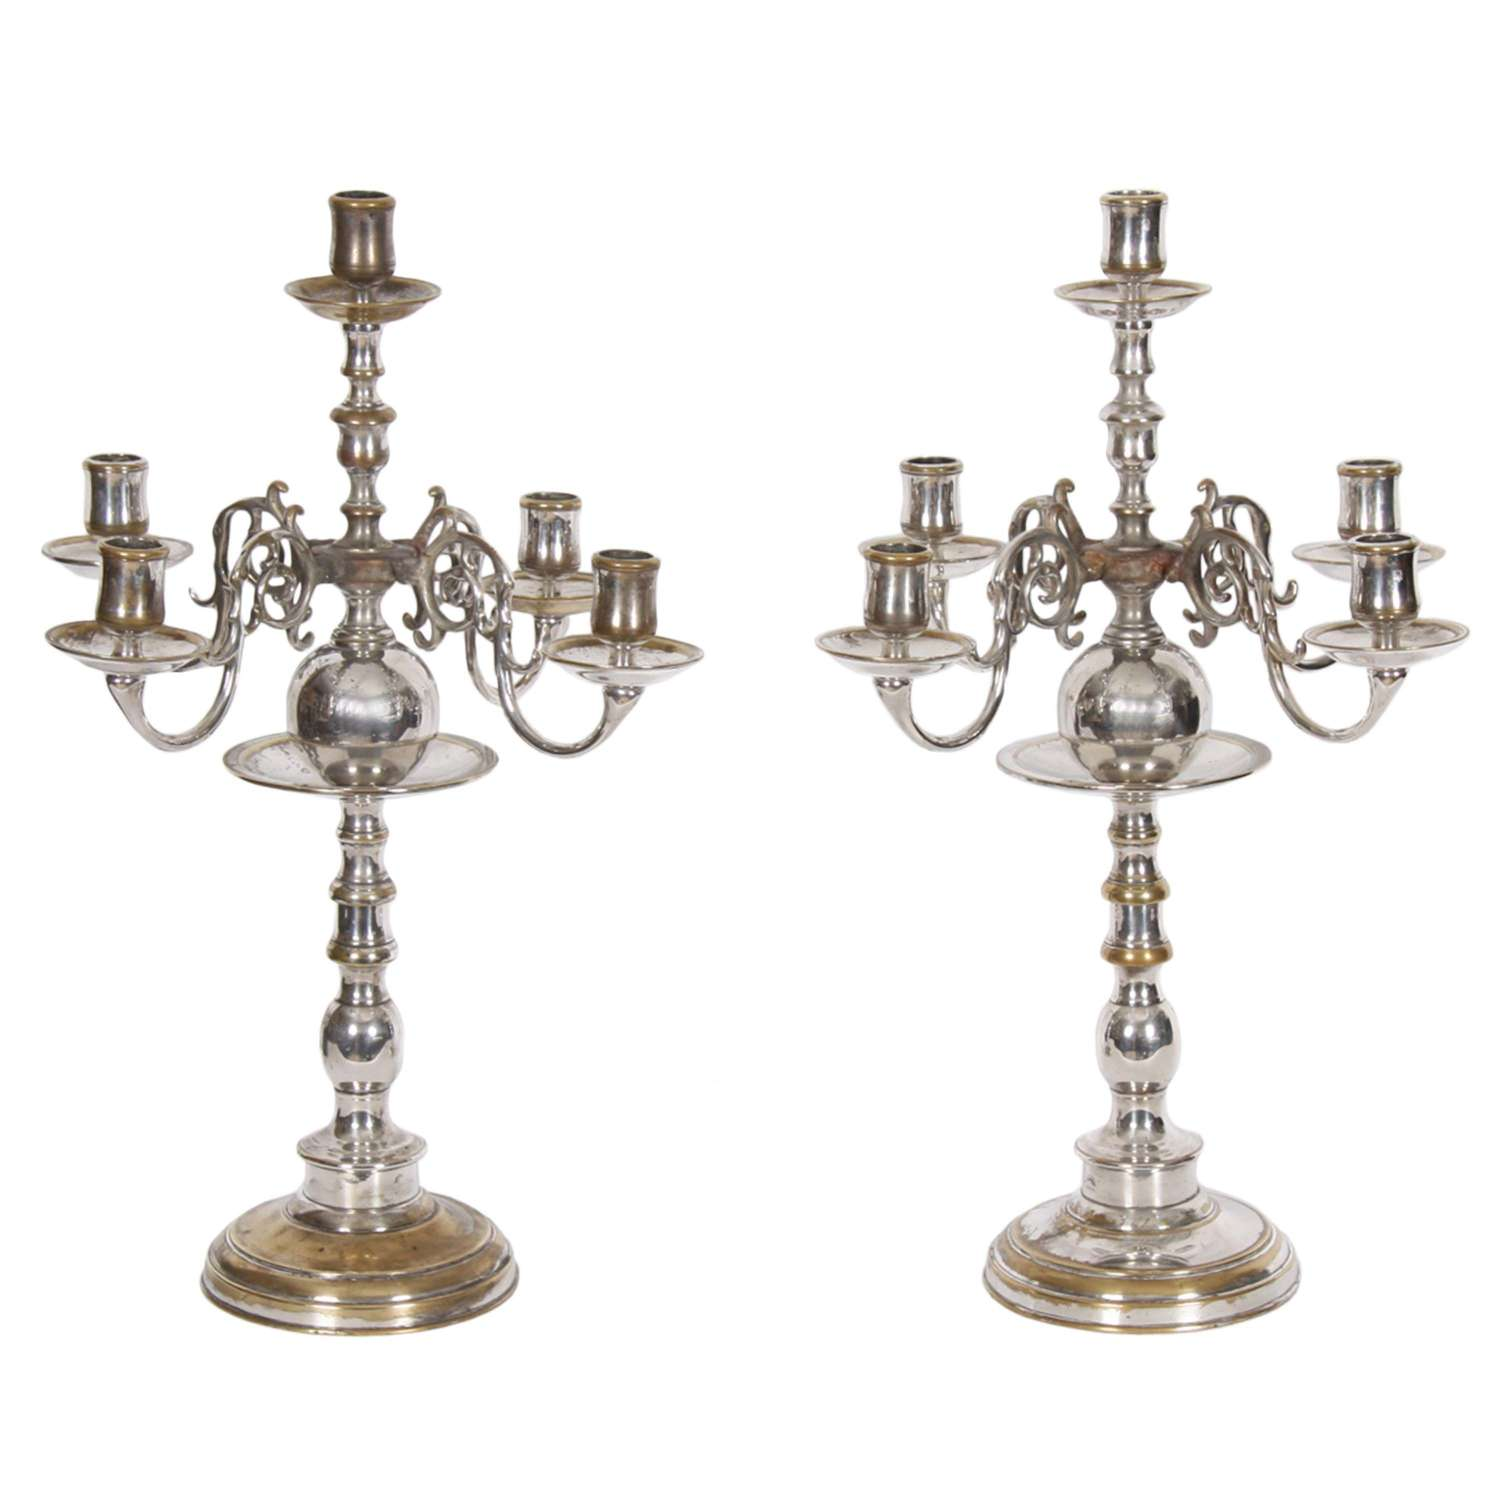 Pair of French Silver Plated Candelabra